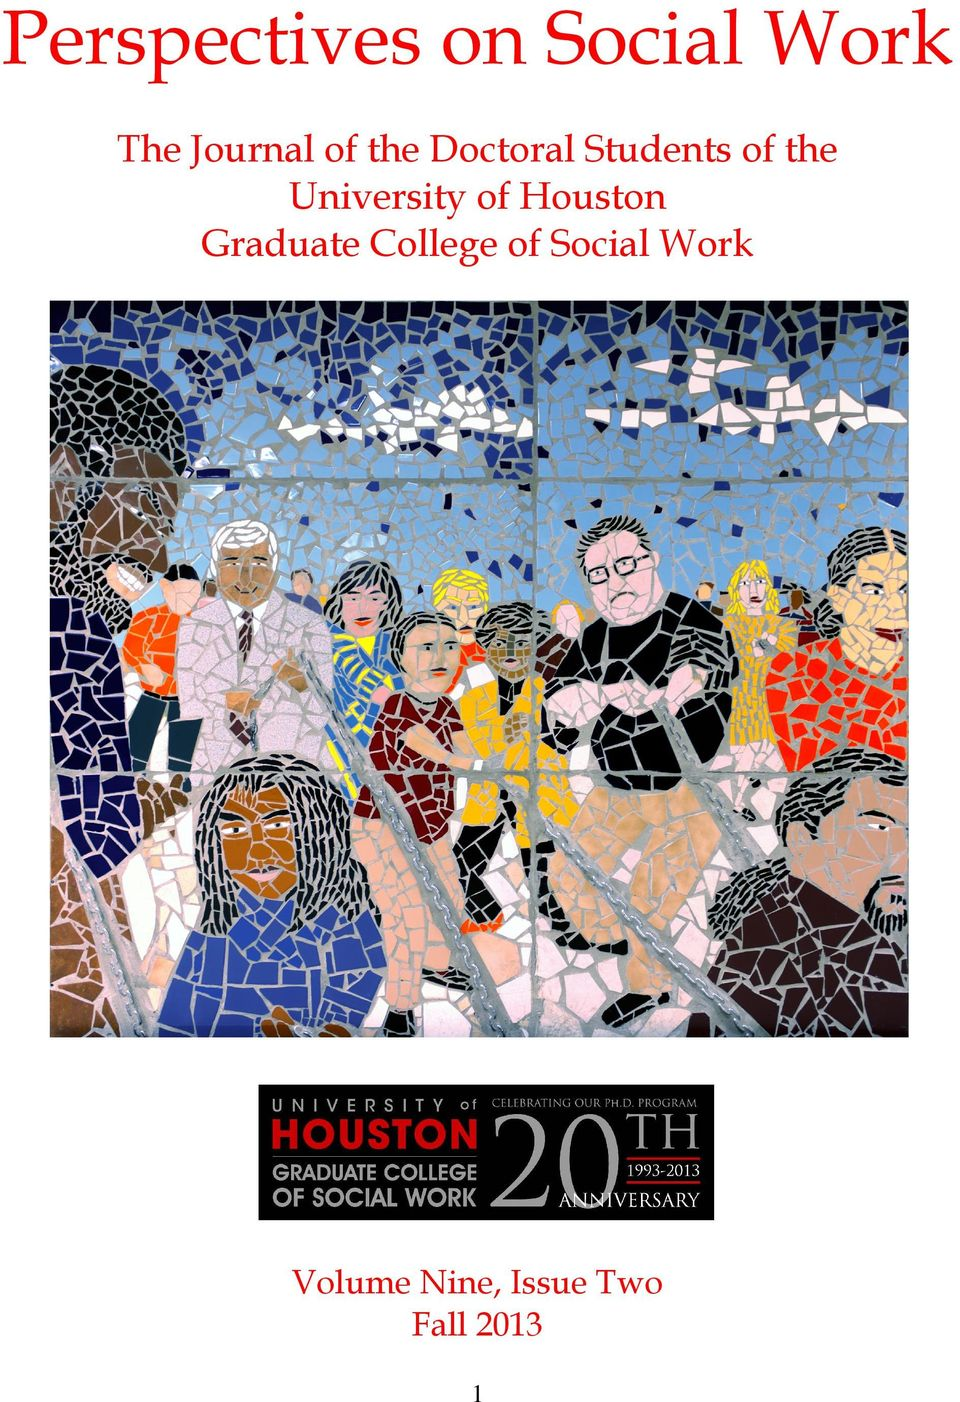 University of Houston Graduate College